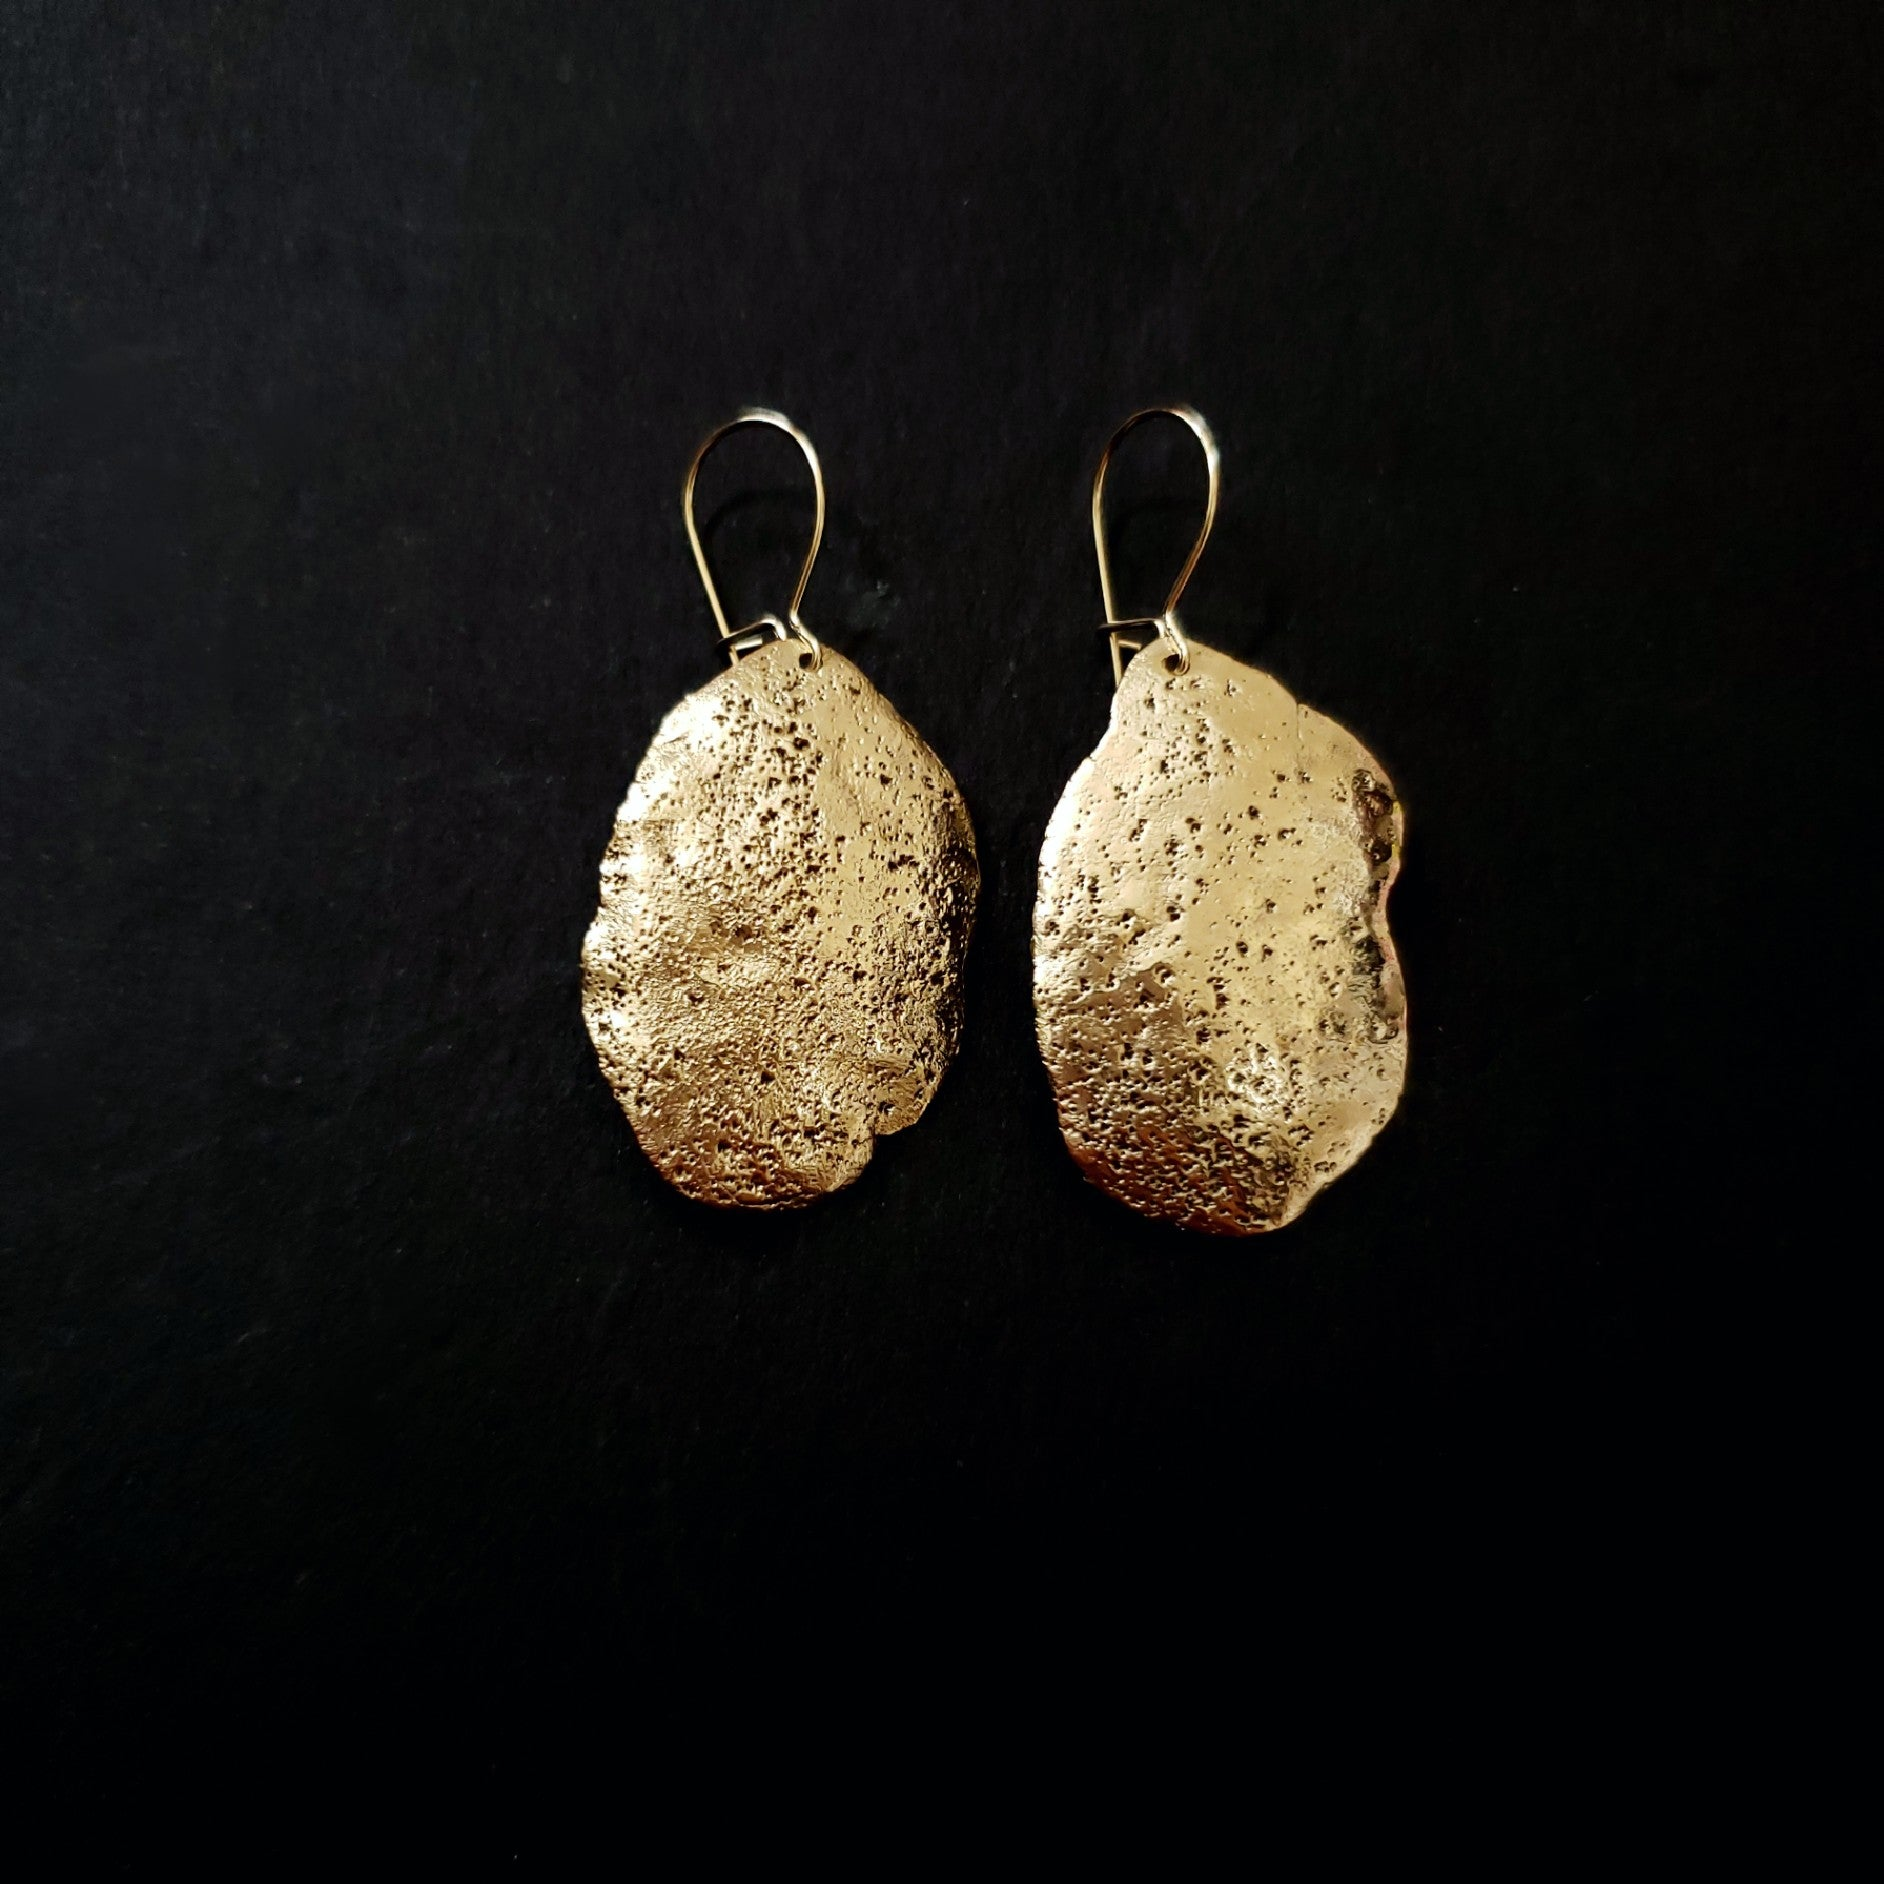 Bronze acient earrings